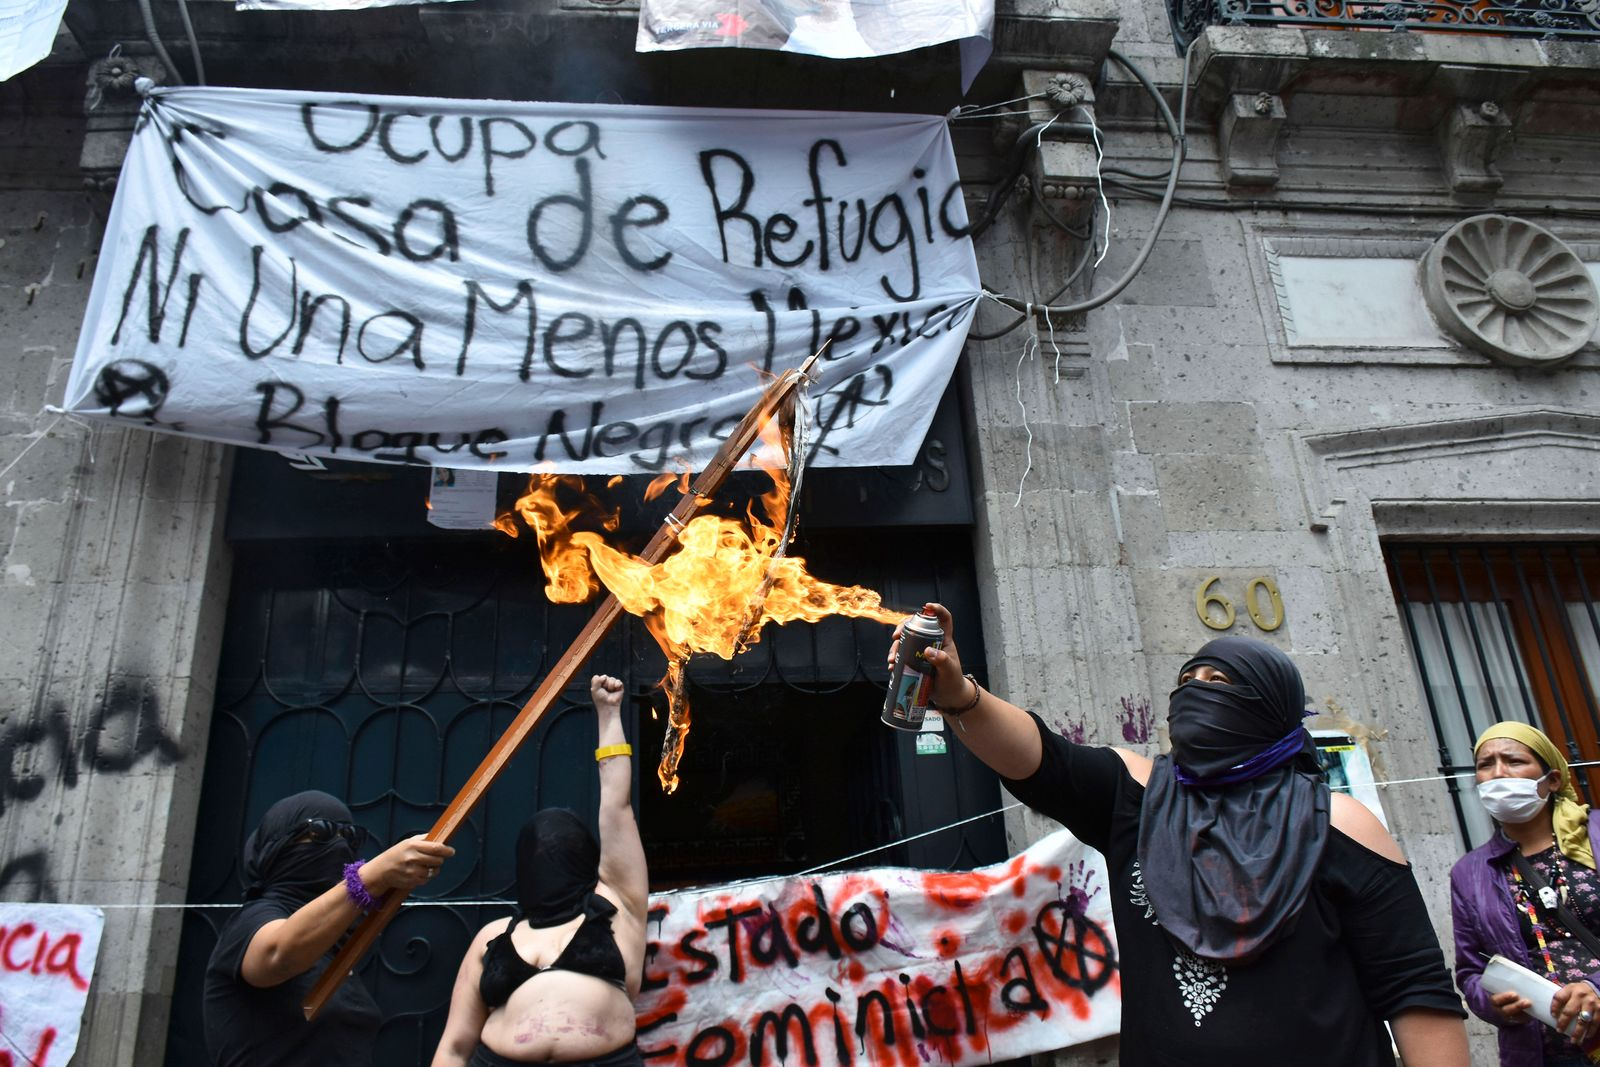 MEXICO CITY, MEXICO - SEPTEMBER 6: During a protest, women seize the facilities of the organization who supposedly shoul